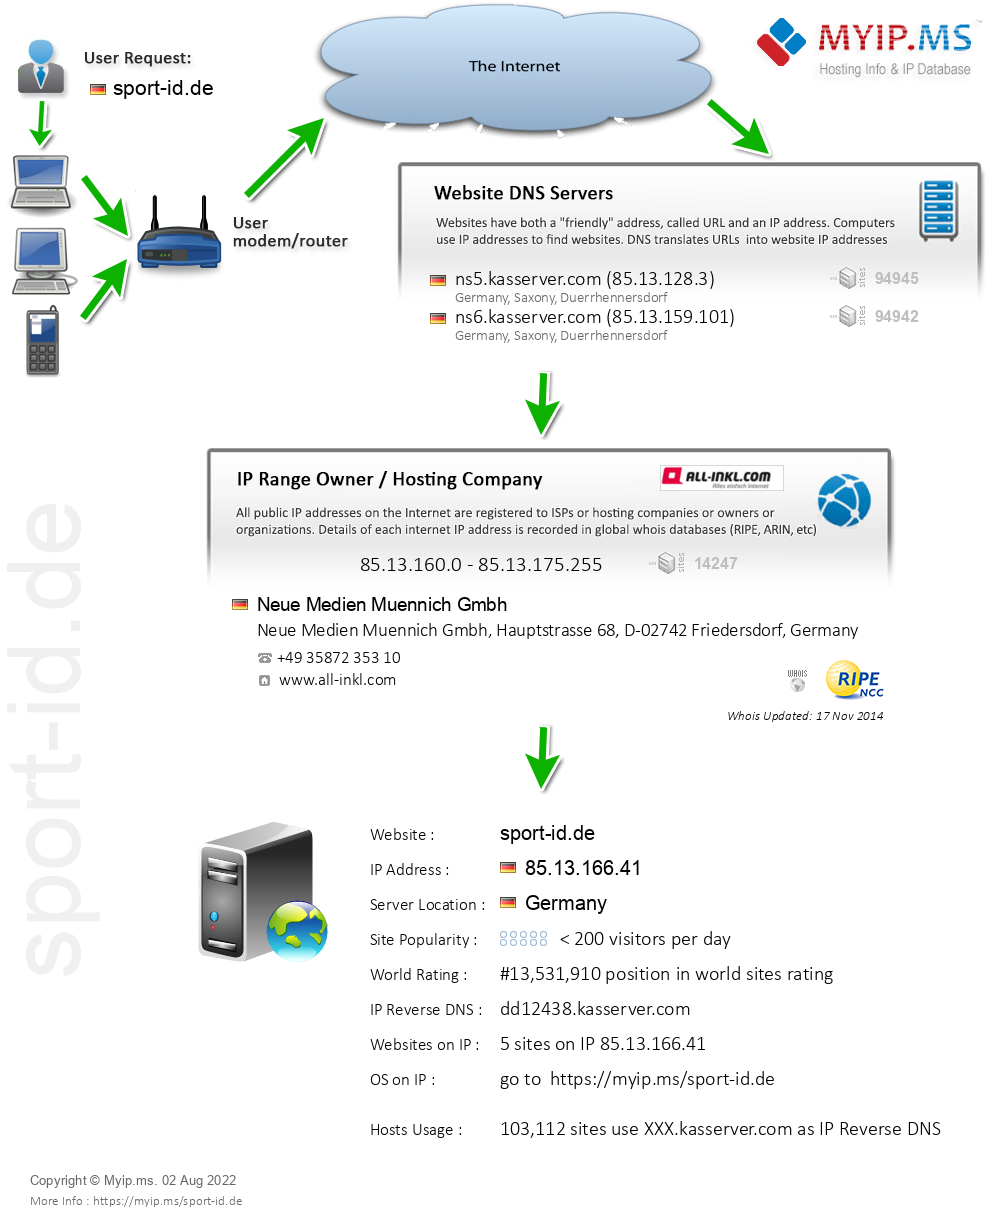 Sport-id.de - Website Hosting Visual IP Diagram